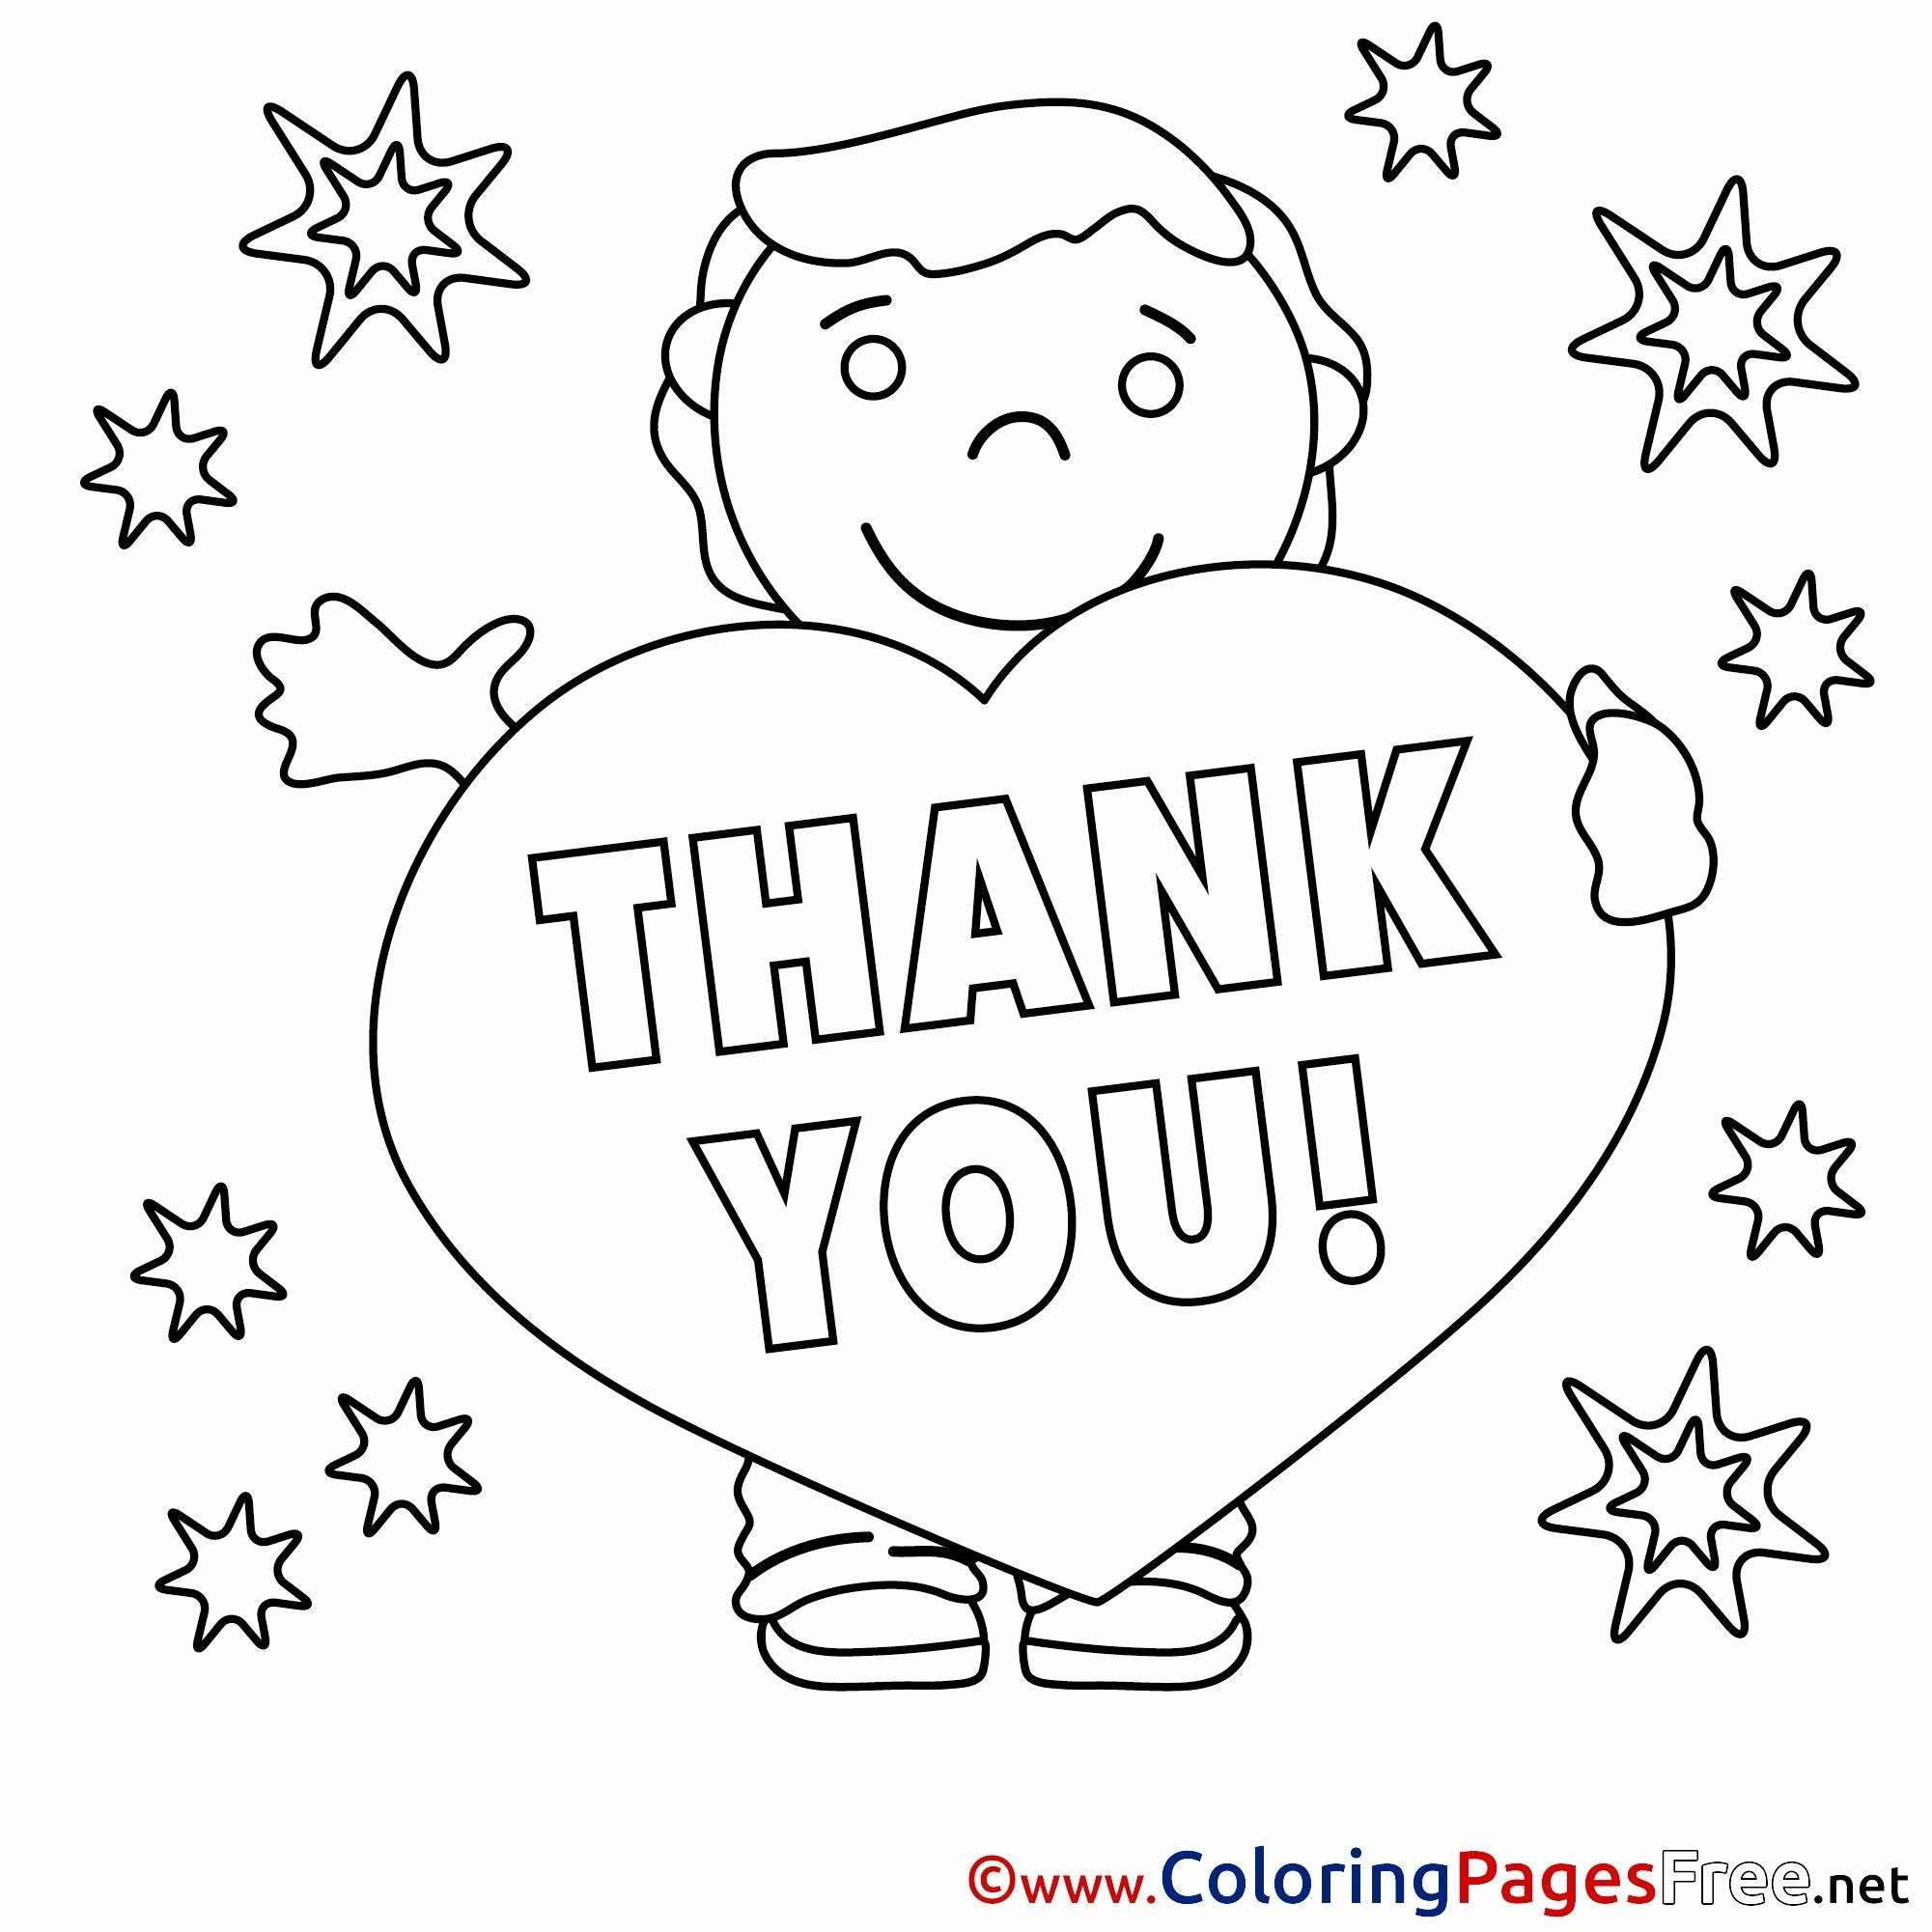 Thank You Coloring Page Luxury Thank You Coloring Pages Free Boy Stars At In 2020 Coloring Pages Inspirational Cute Coloring Pages Love Coloring Pages